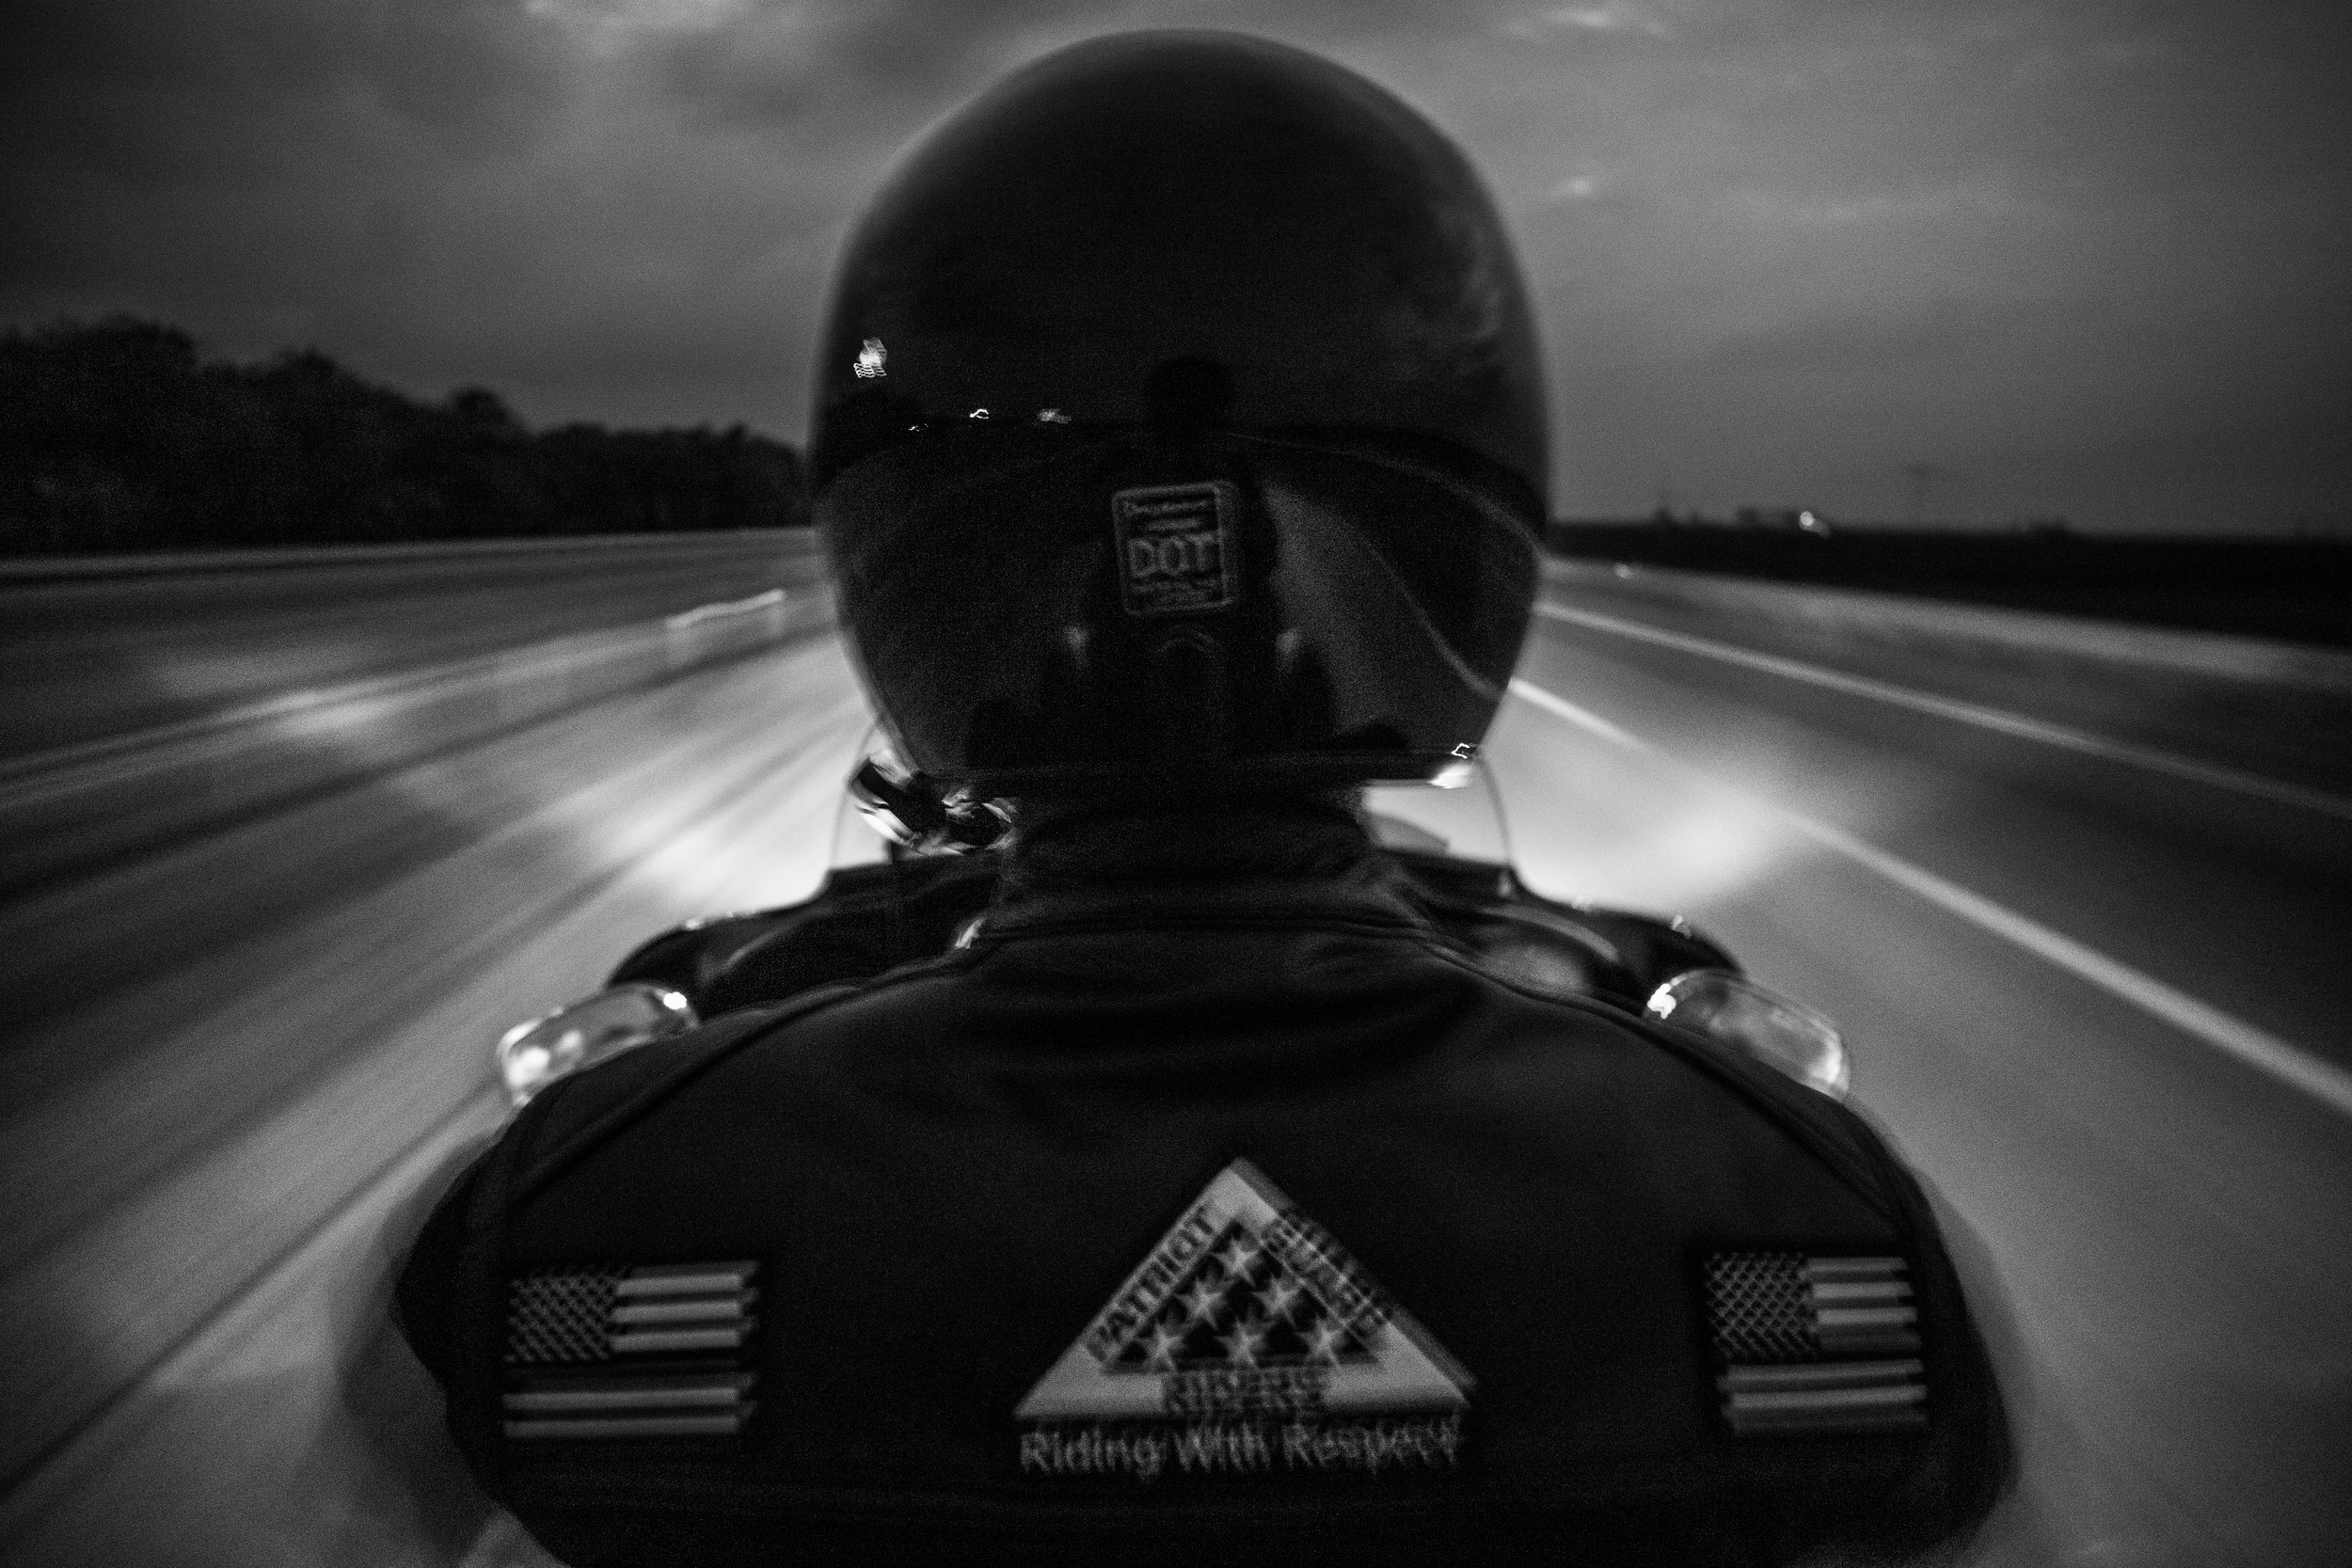 Patriot Guard Rider, Chris Krause, 32, rides his Harley Davidson motorcycle on Interstate 70 from Kingdom City to Columbia, Missouri for the 58th Honor Flight on Tuesday, Jun. 18, 2019. This was Krause's first honor flight ride, which featured 256 motorcycles at this event.